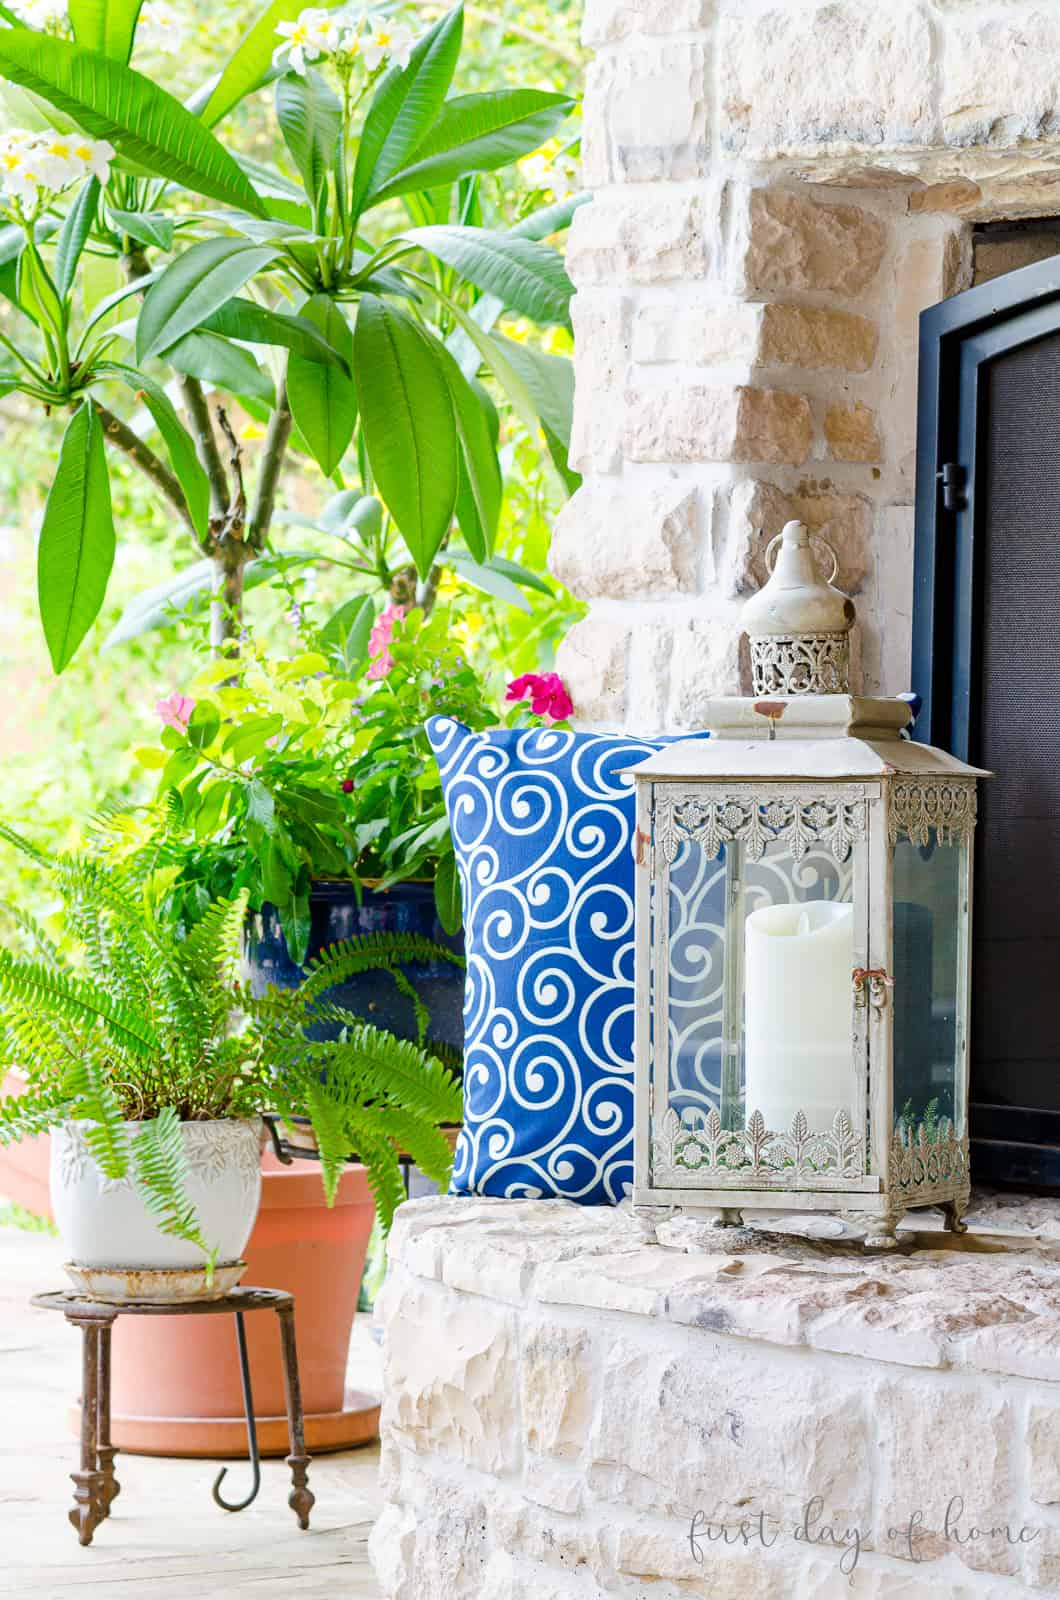 Neutral lantern on white stone hearth outdoors with plants and greenery in background